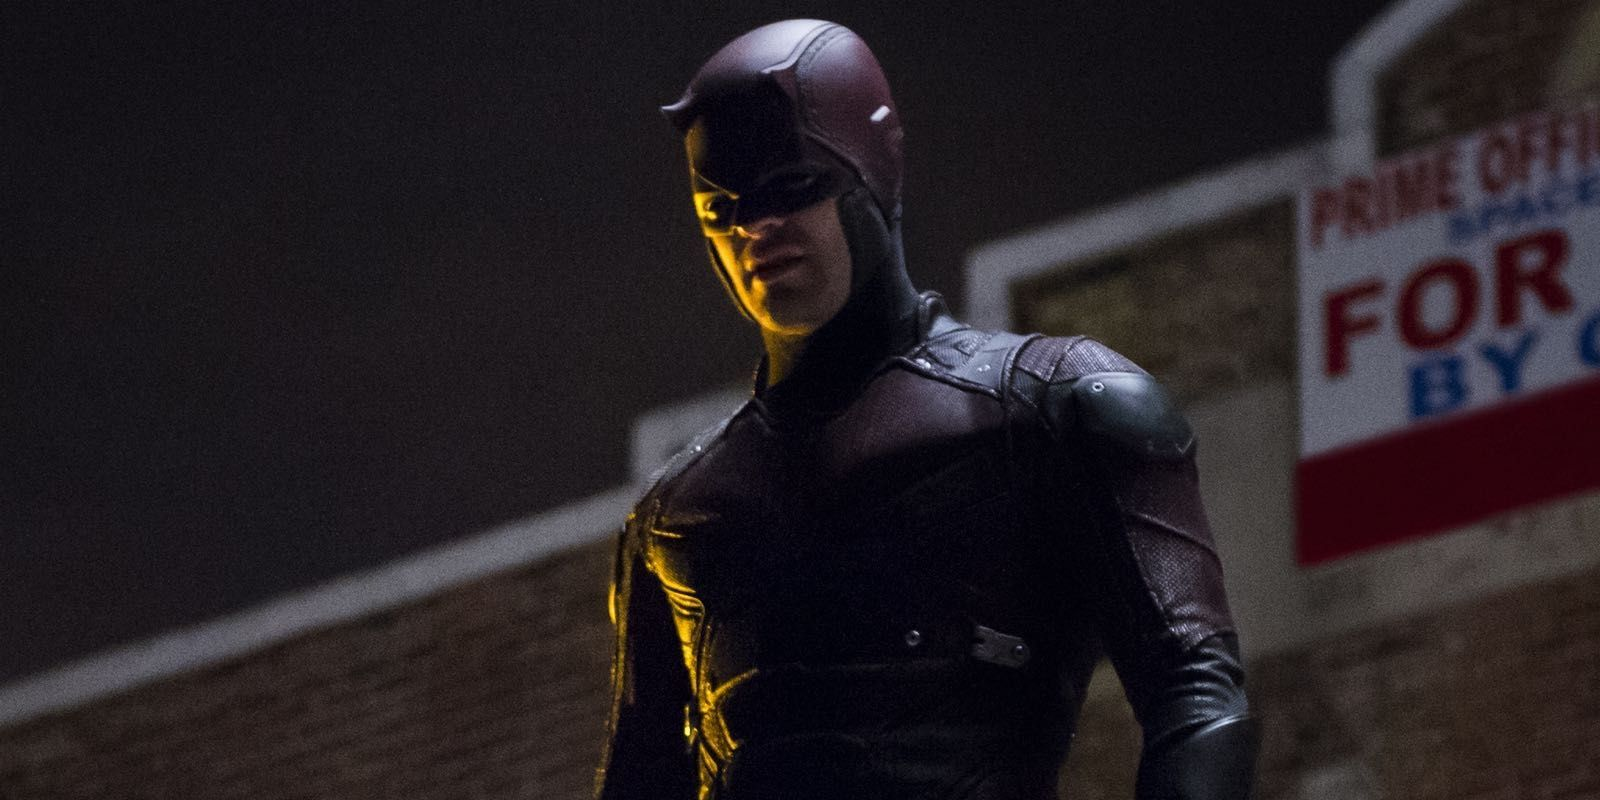 Daredevil: D'Onofrio Says Charlie Cox Deserves to Continue Playing Matt Murdock